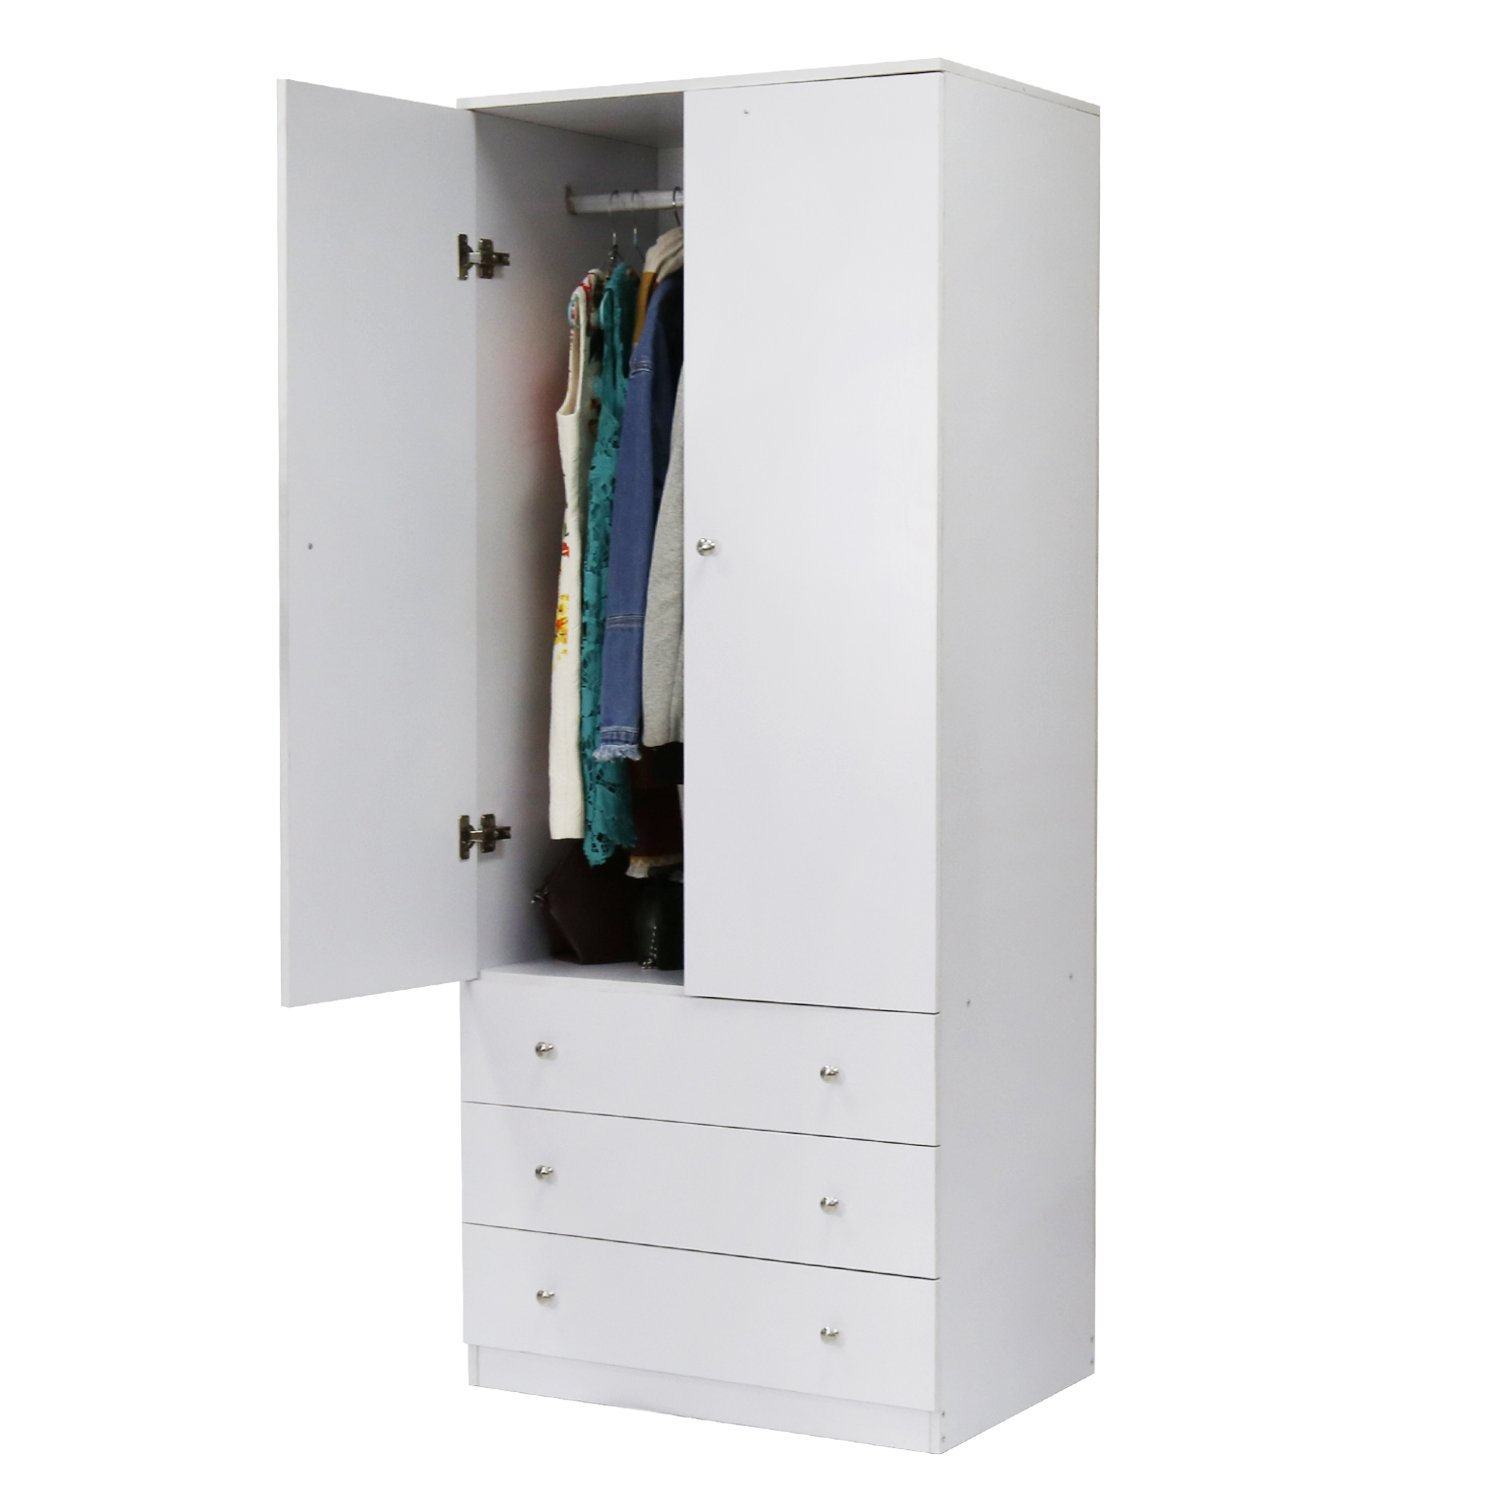 Peach Tree 2-Door Wardrobe Cabinet Armoire Storage with Three Drawers, Black/White (White)